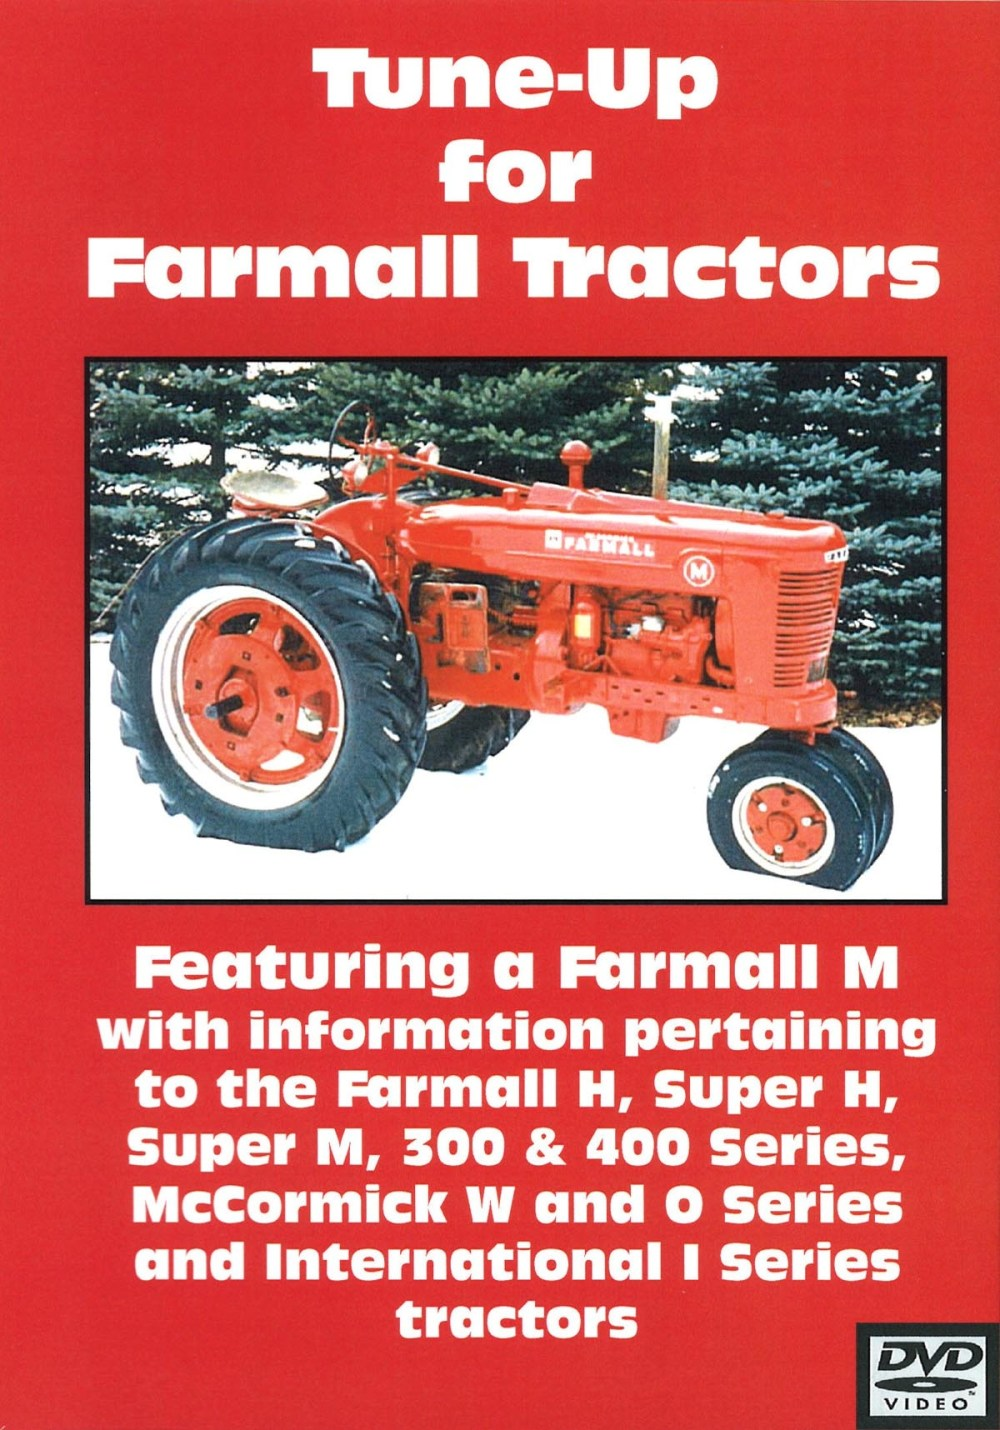 medium resolution of ih blue ribbon service manual for the case ih 500 crawler m md model tractor s